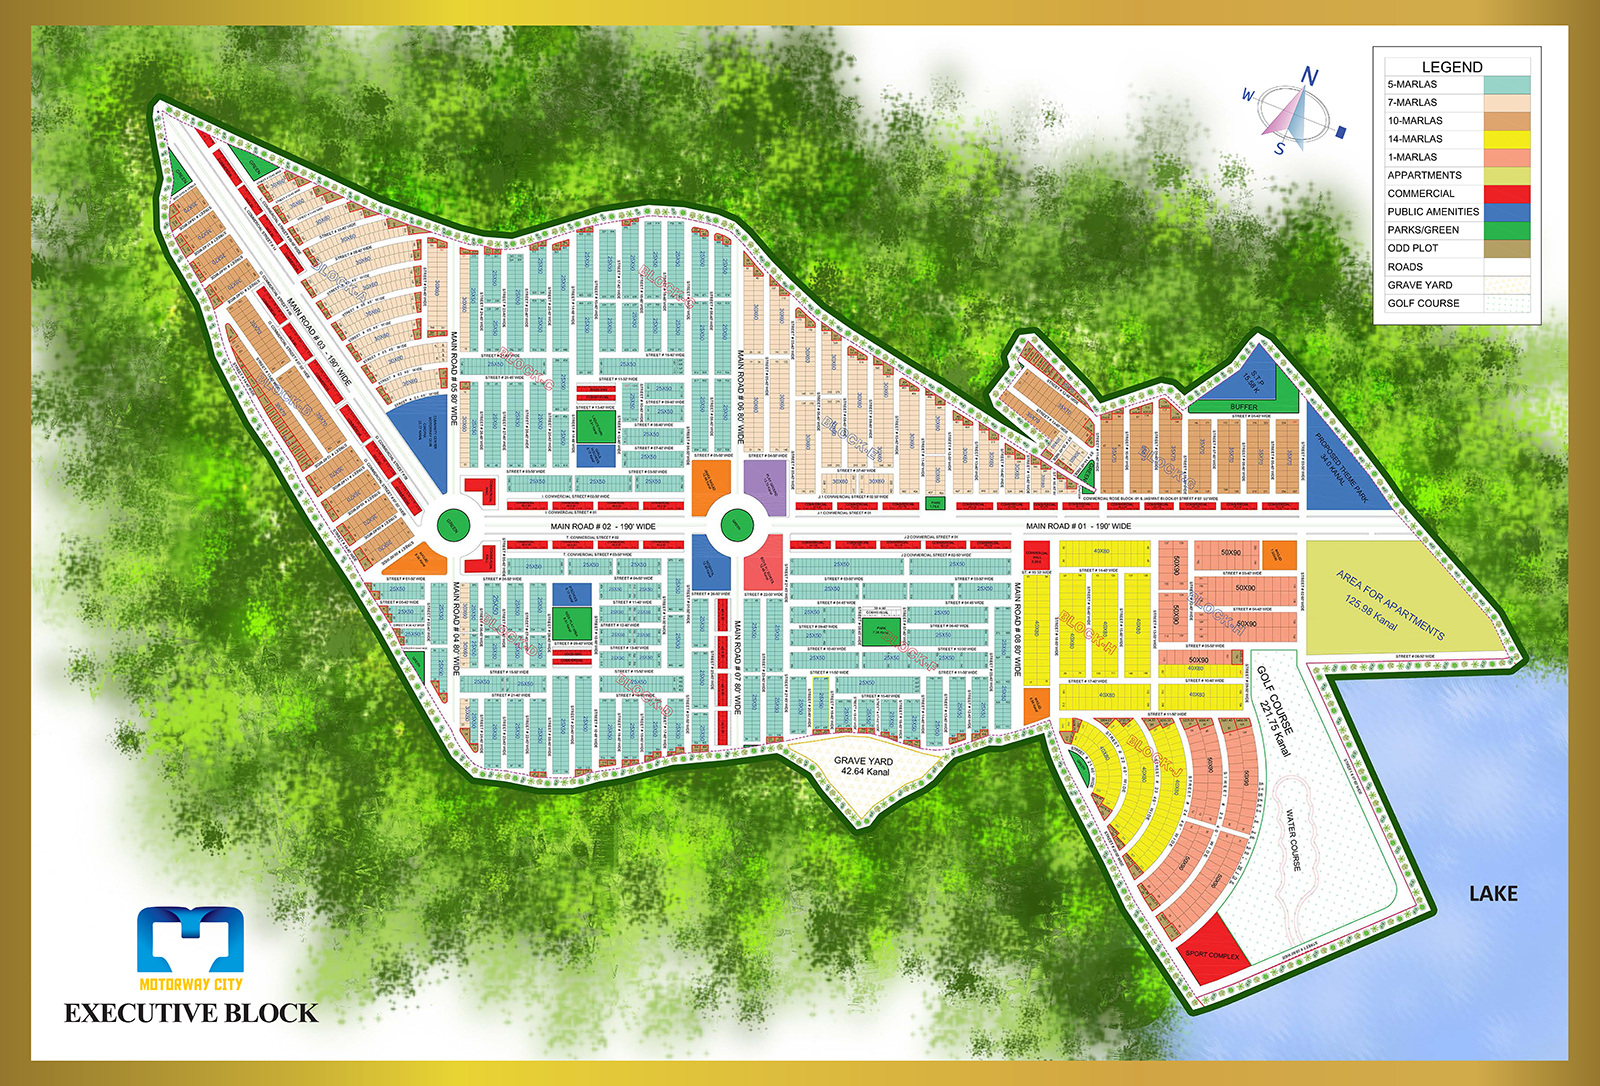 Motorway City Executive Block Map